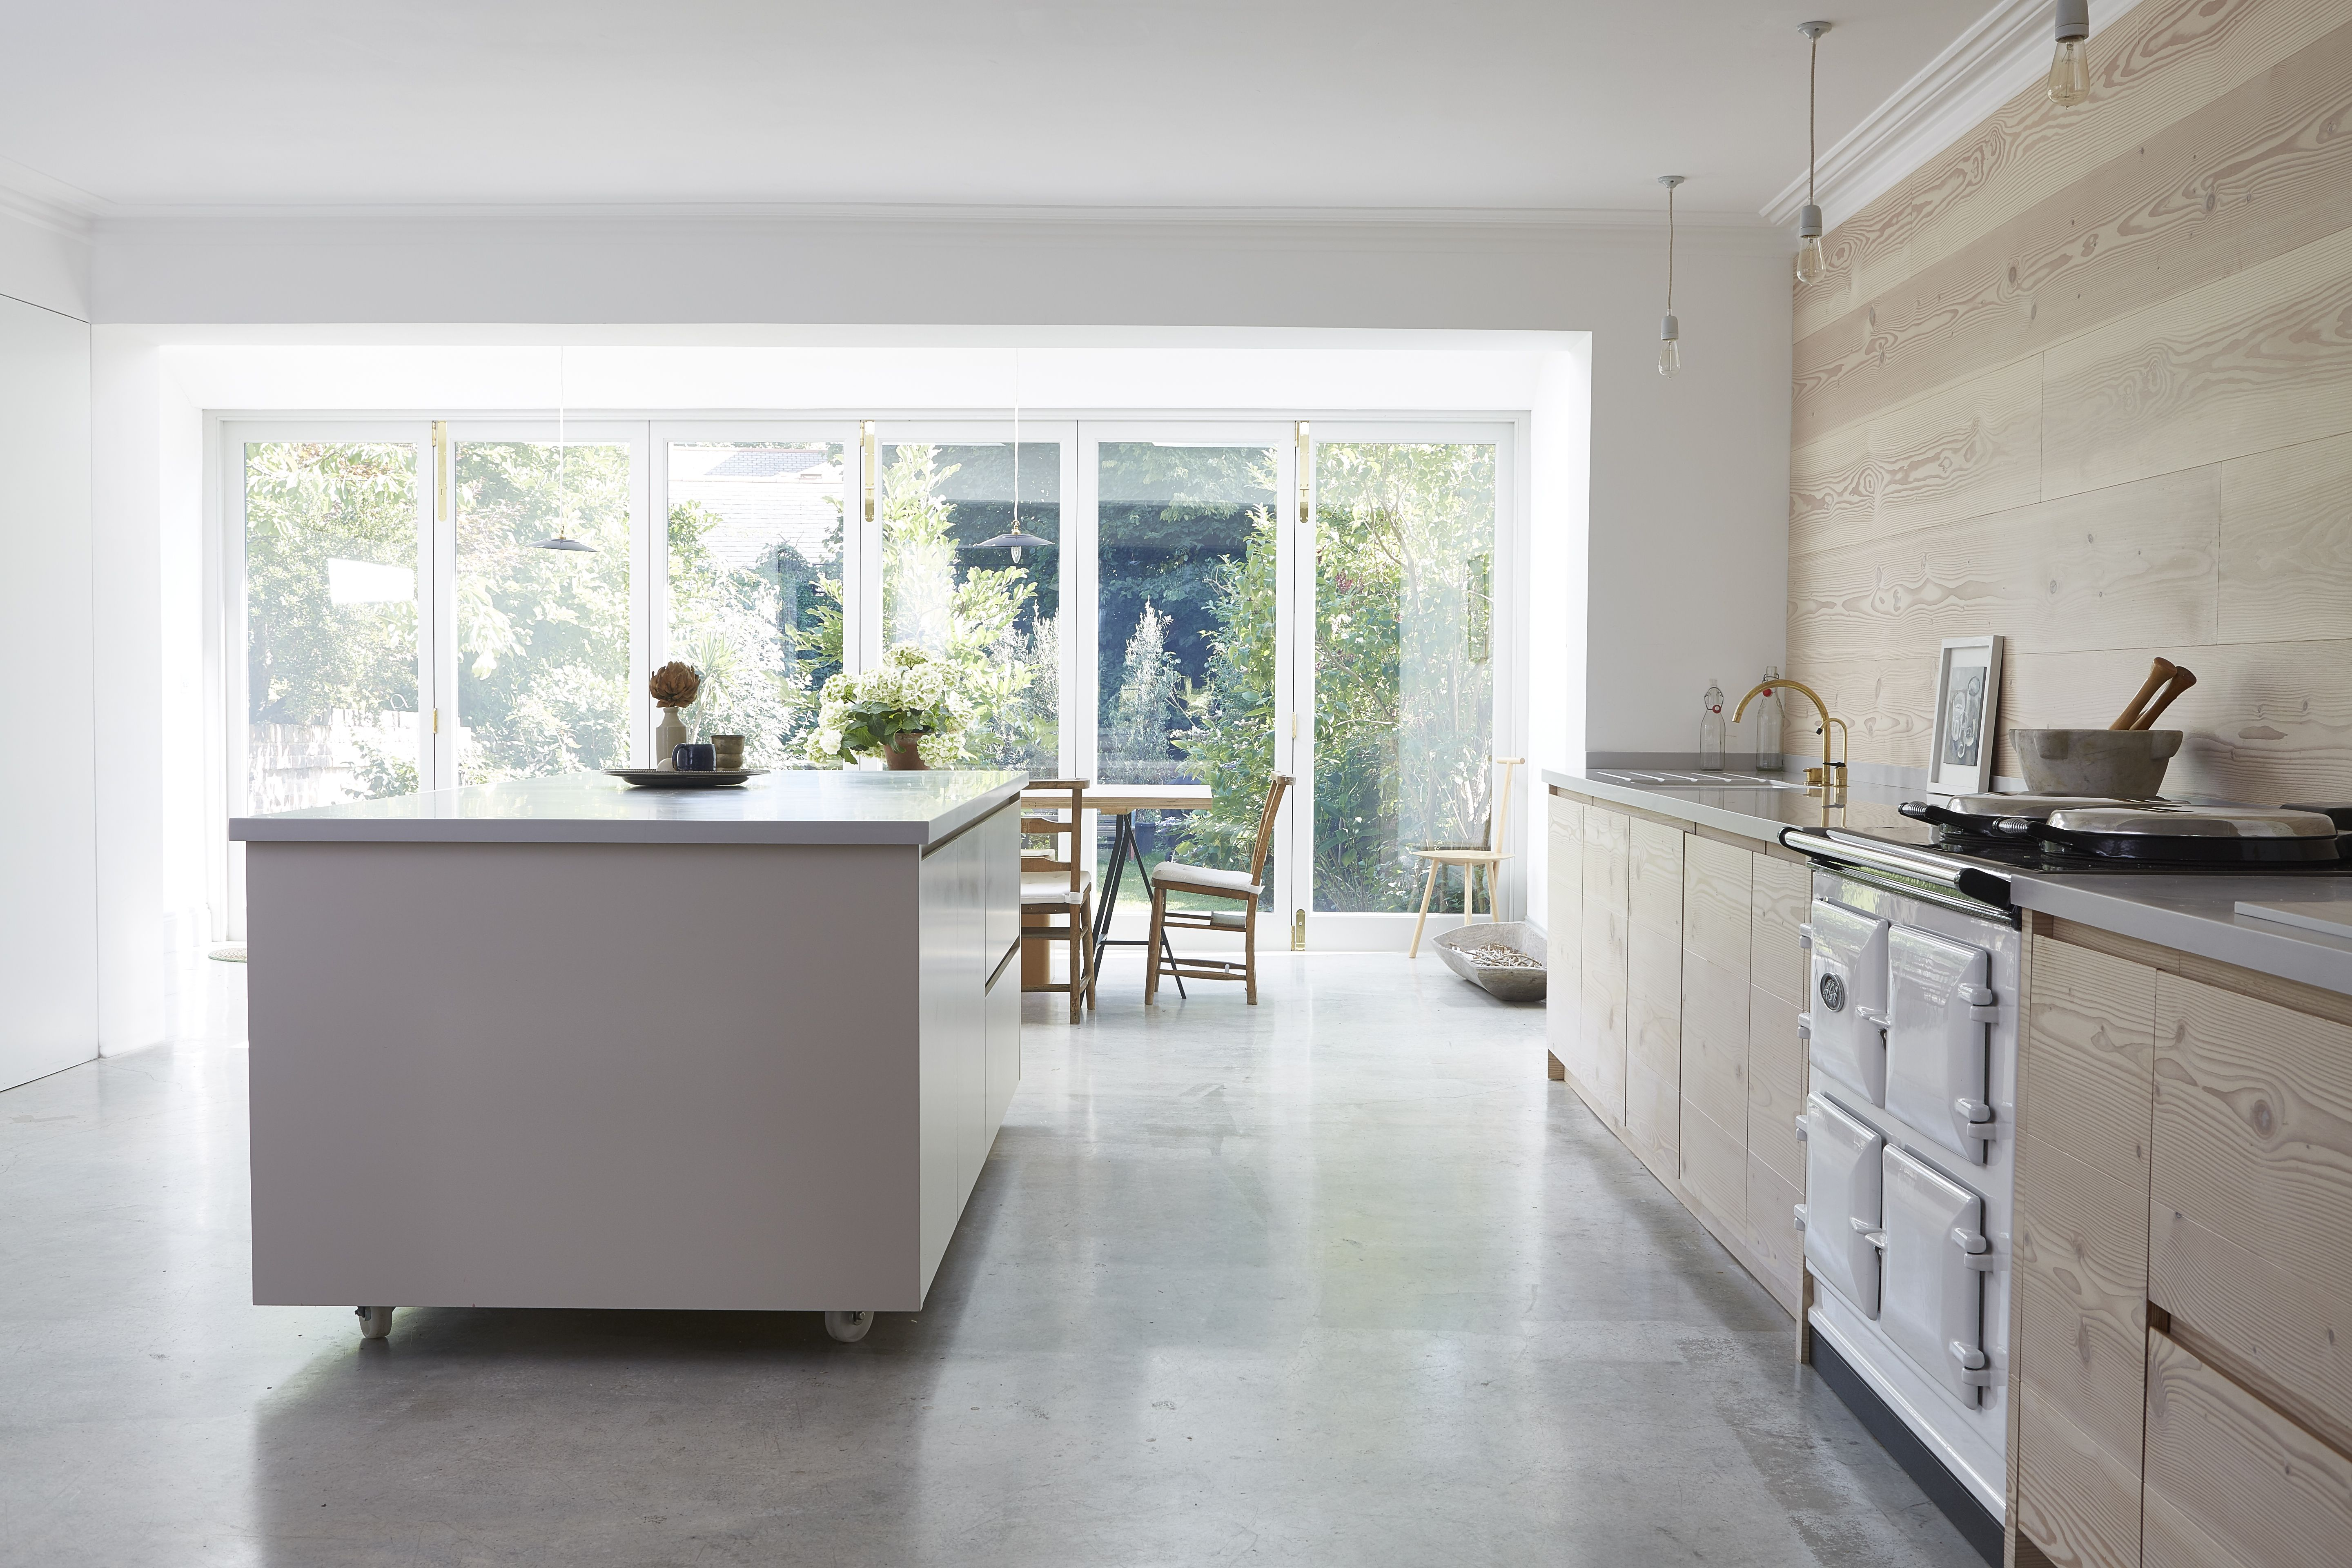 Kitchen Of The Week Scandi Serenity In A London Remodel Remodelista Kitchen Island On Wheels White Kitchen Island Island On Wheels